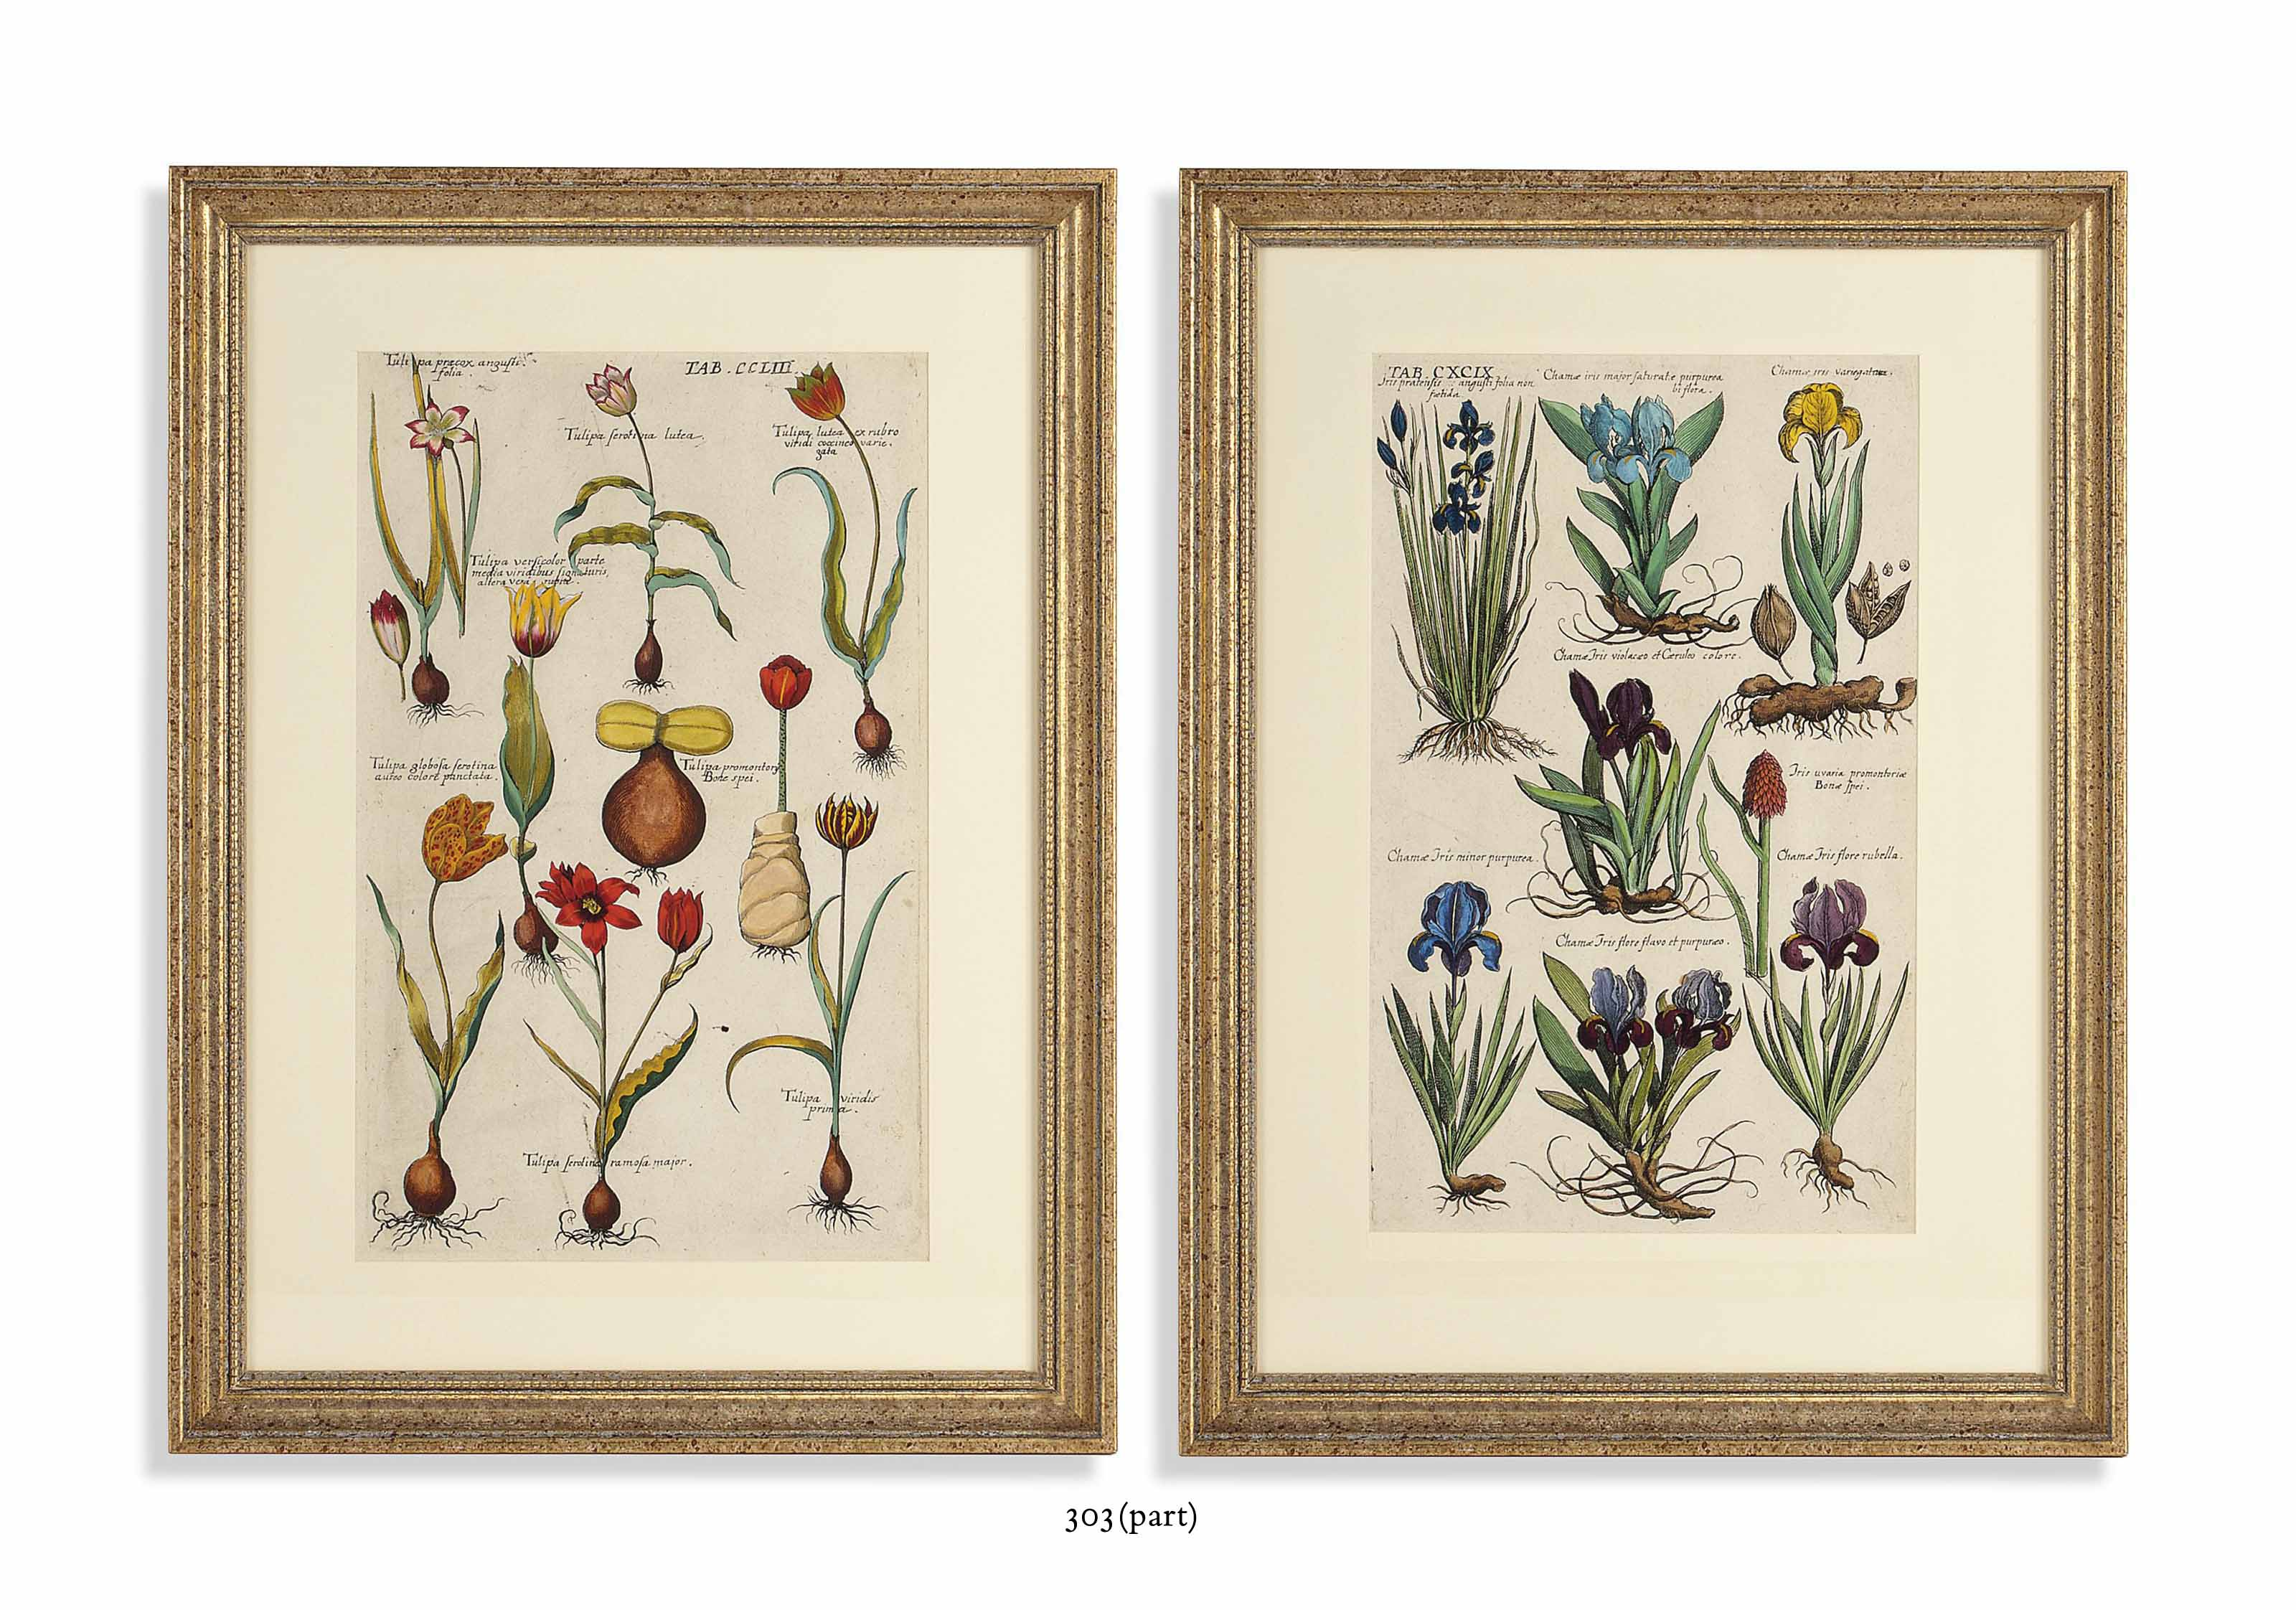 ELEVEN BOTANICAL ENGRAVINGS FROM THE BOOK FLORILEGIUM NOVUM